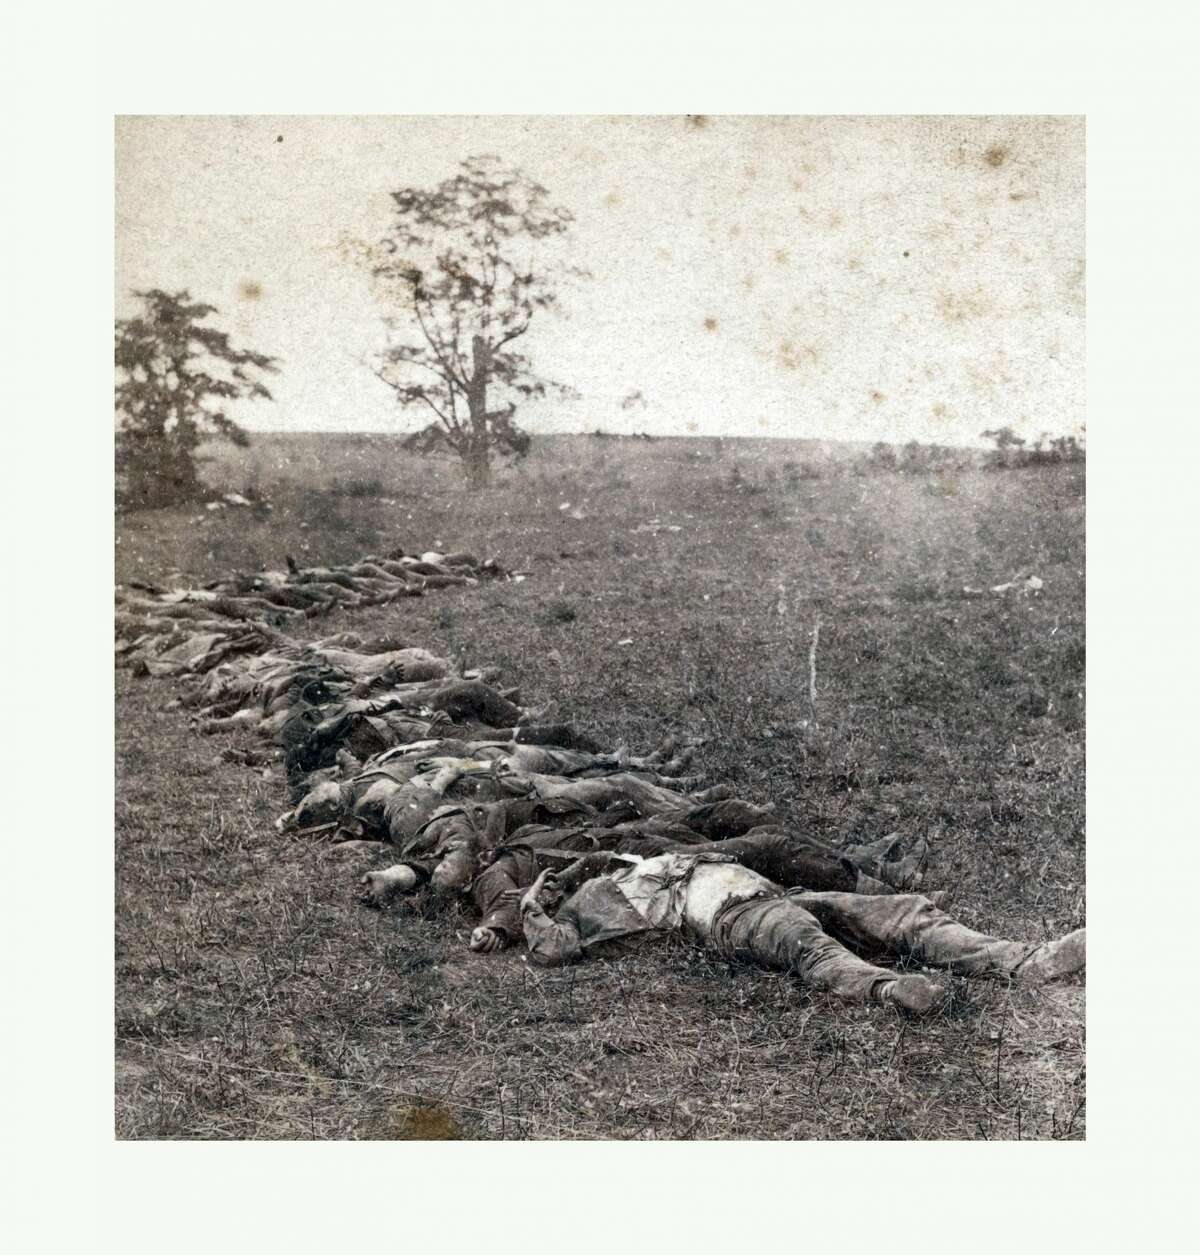 American Civil War: Gathered together for burial after the Battle Of Antietam, dead bodies on the ground. P